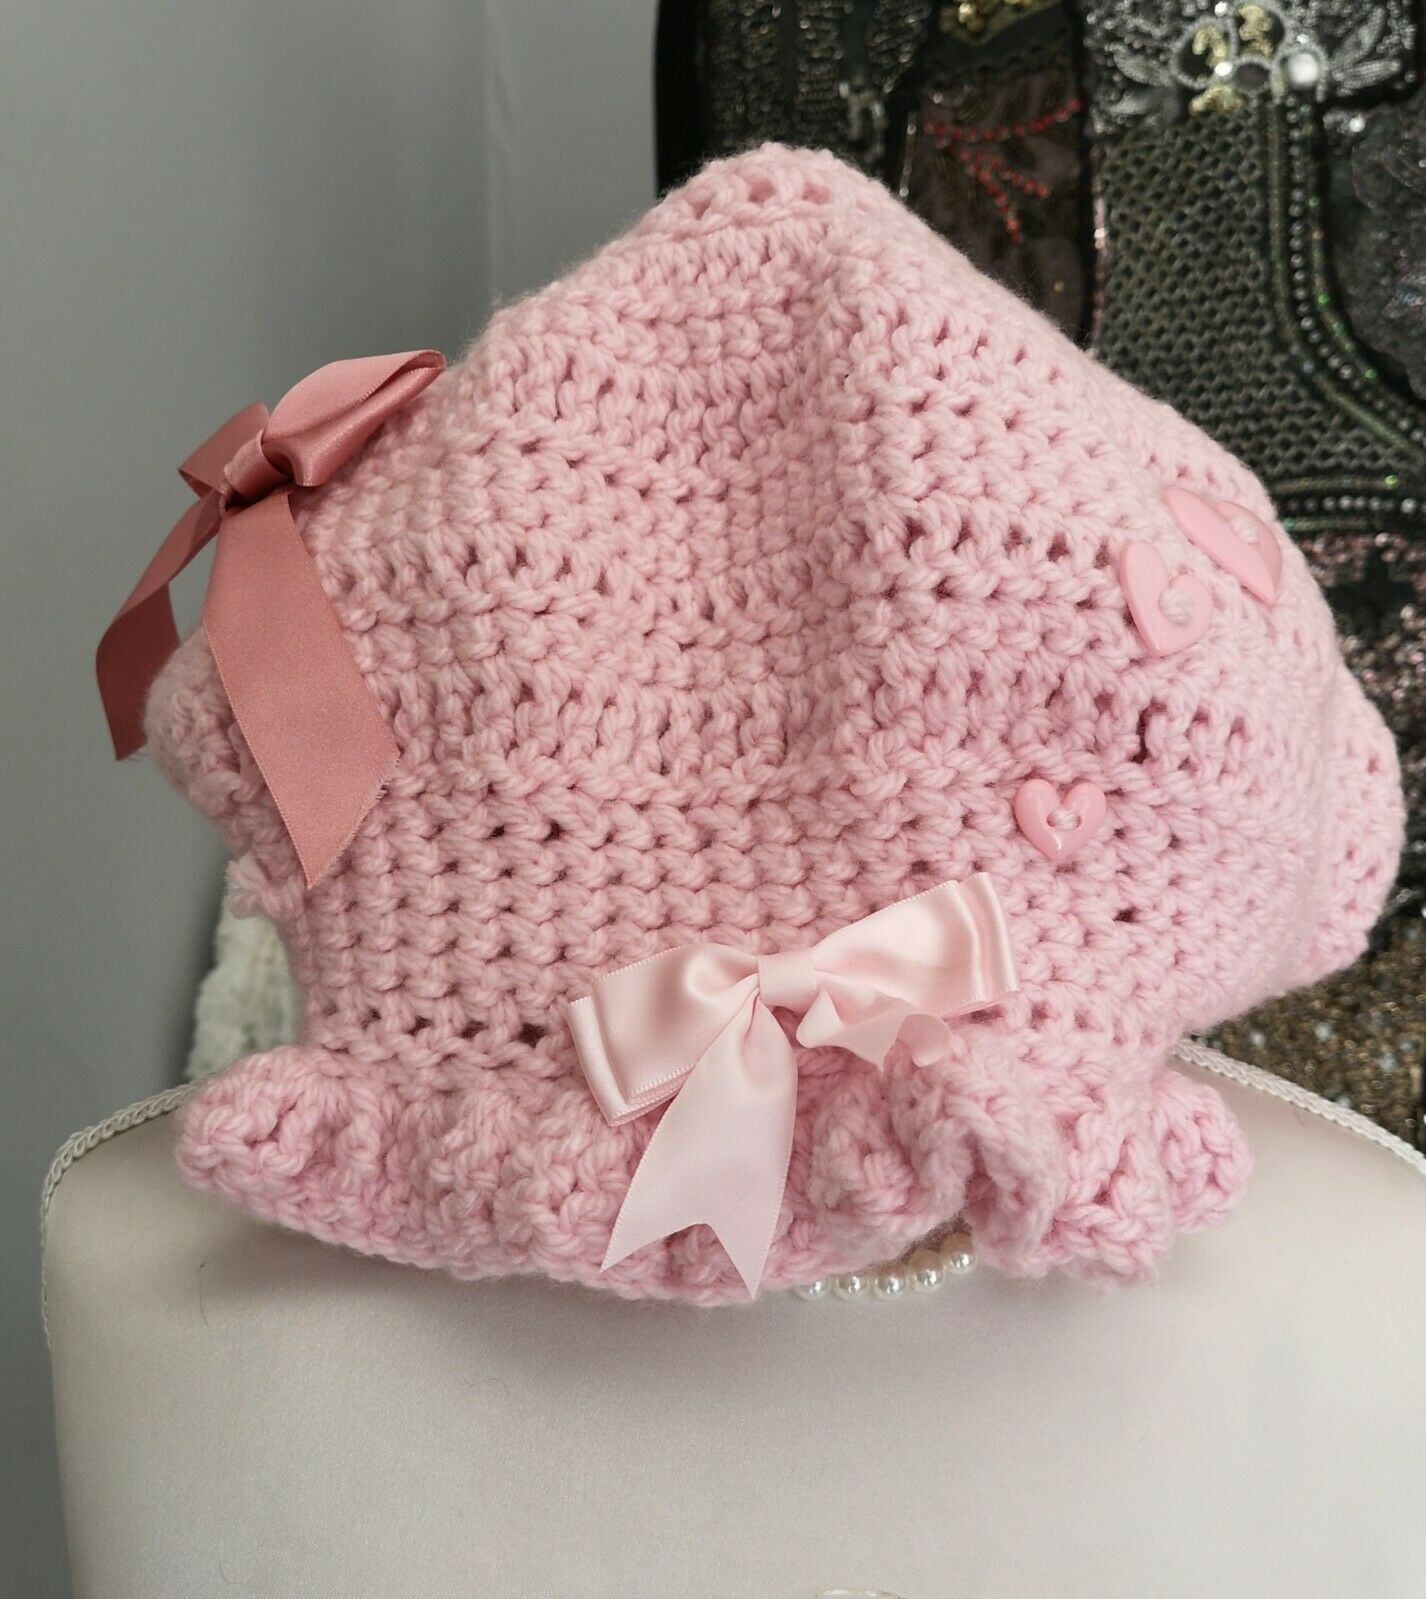 Hippie Boho Hat Slouchy pale pink crochet adult handmade matching frilly mits.